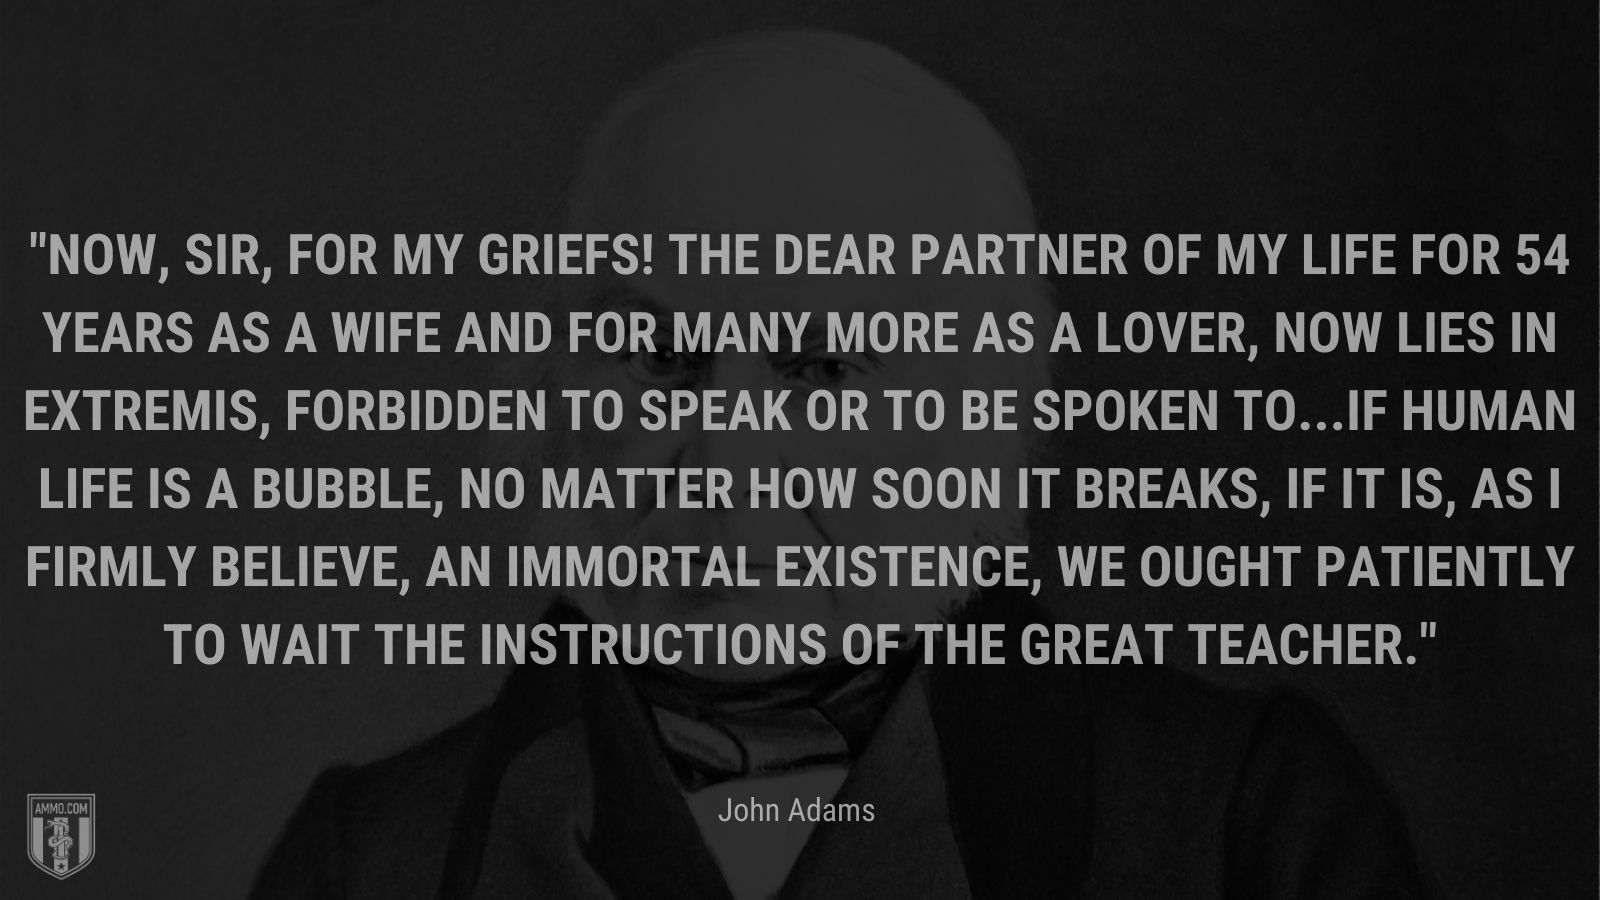 """""""Now, sir, for my griefs! The dear partner of my life for 54 years as a wife and for many more as a lover, now lies in extremis, forbidden to speak or to be spoken to...If human life is a bubble, no matter how soon it breaks, if it is, as I firmly believe, an immortal existence, we ought patiently to wait the instructions of the great Teacher."""" - John Adams"""